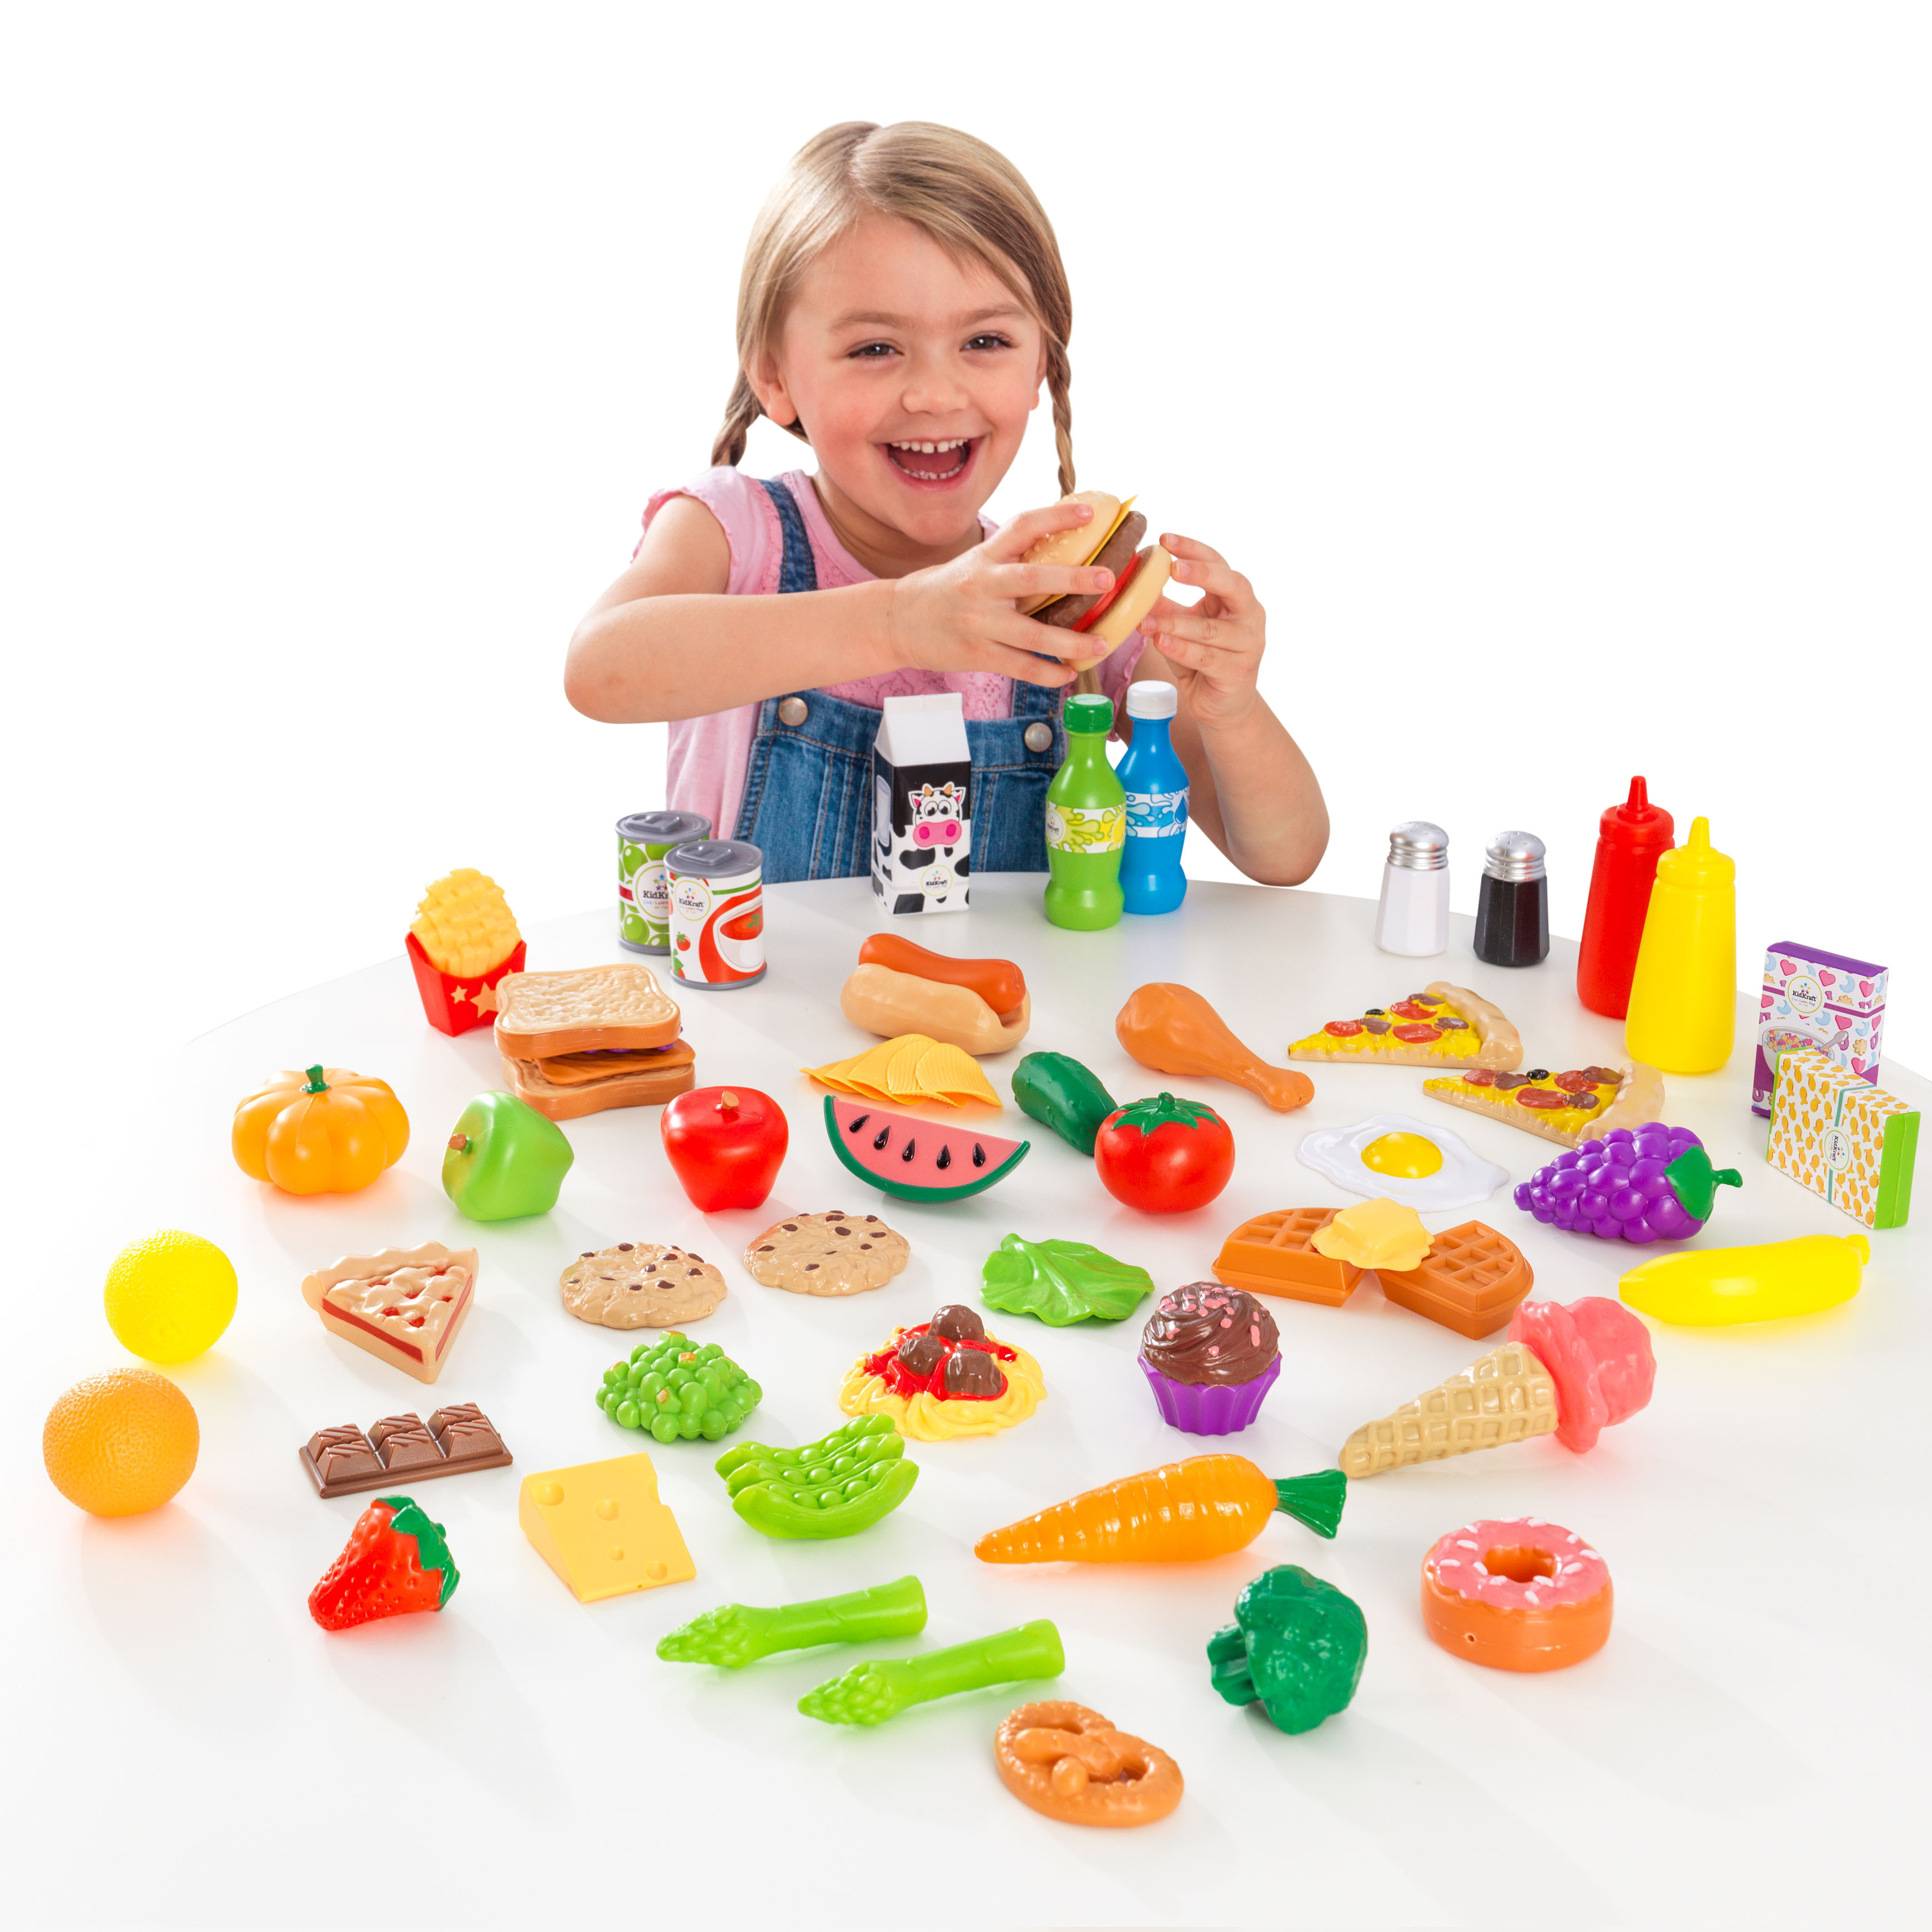 KidKraft 65-pc Play Food Set by KidKraft